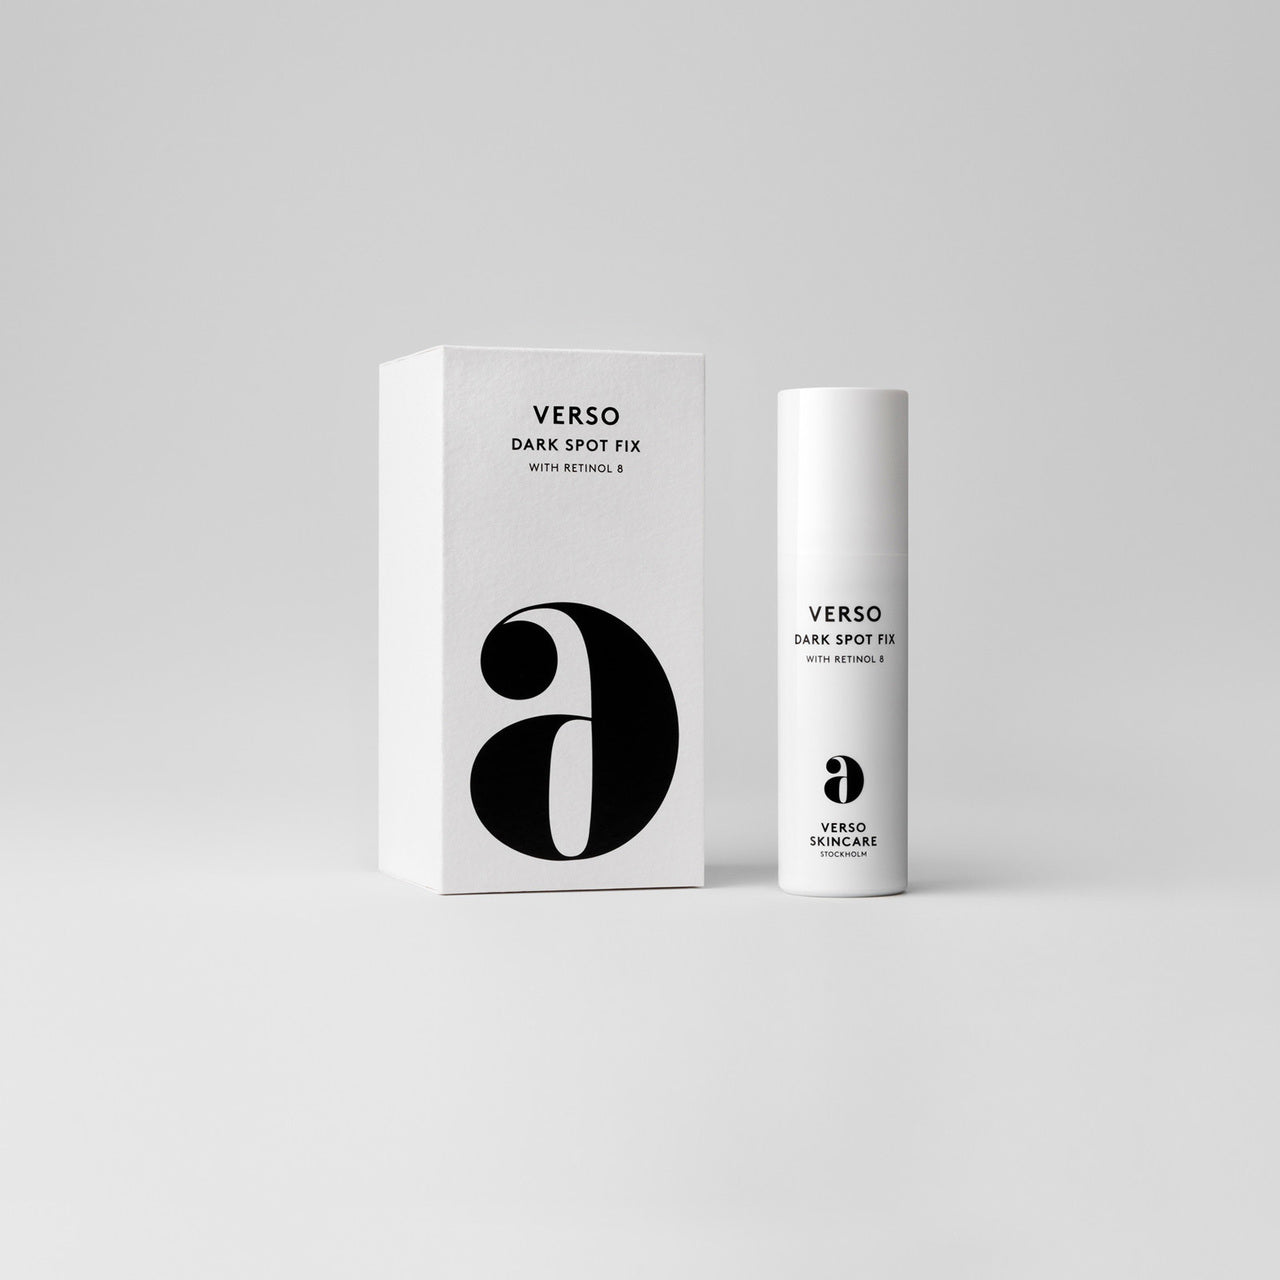 Verso - No. 6: Dark Spot Fix, available at LCD